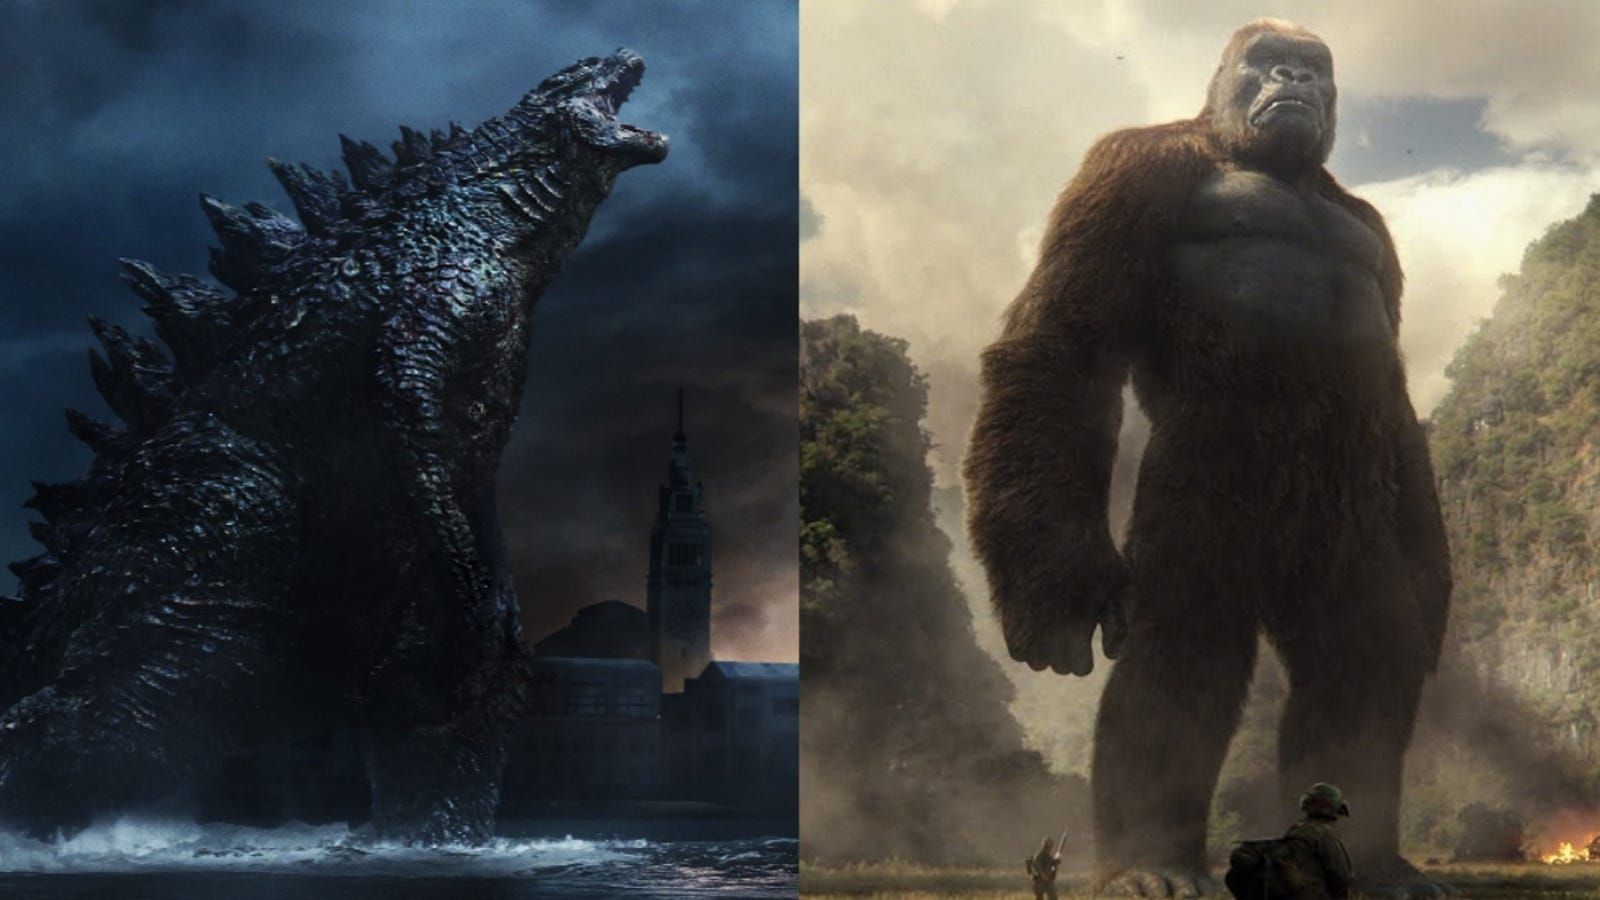 Godzilla vs. Kong's Writer Explains How Big G Isn't Going to Just Walk Away With This Thing - Gizmodo